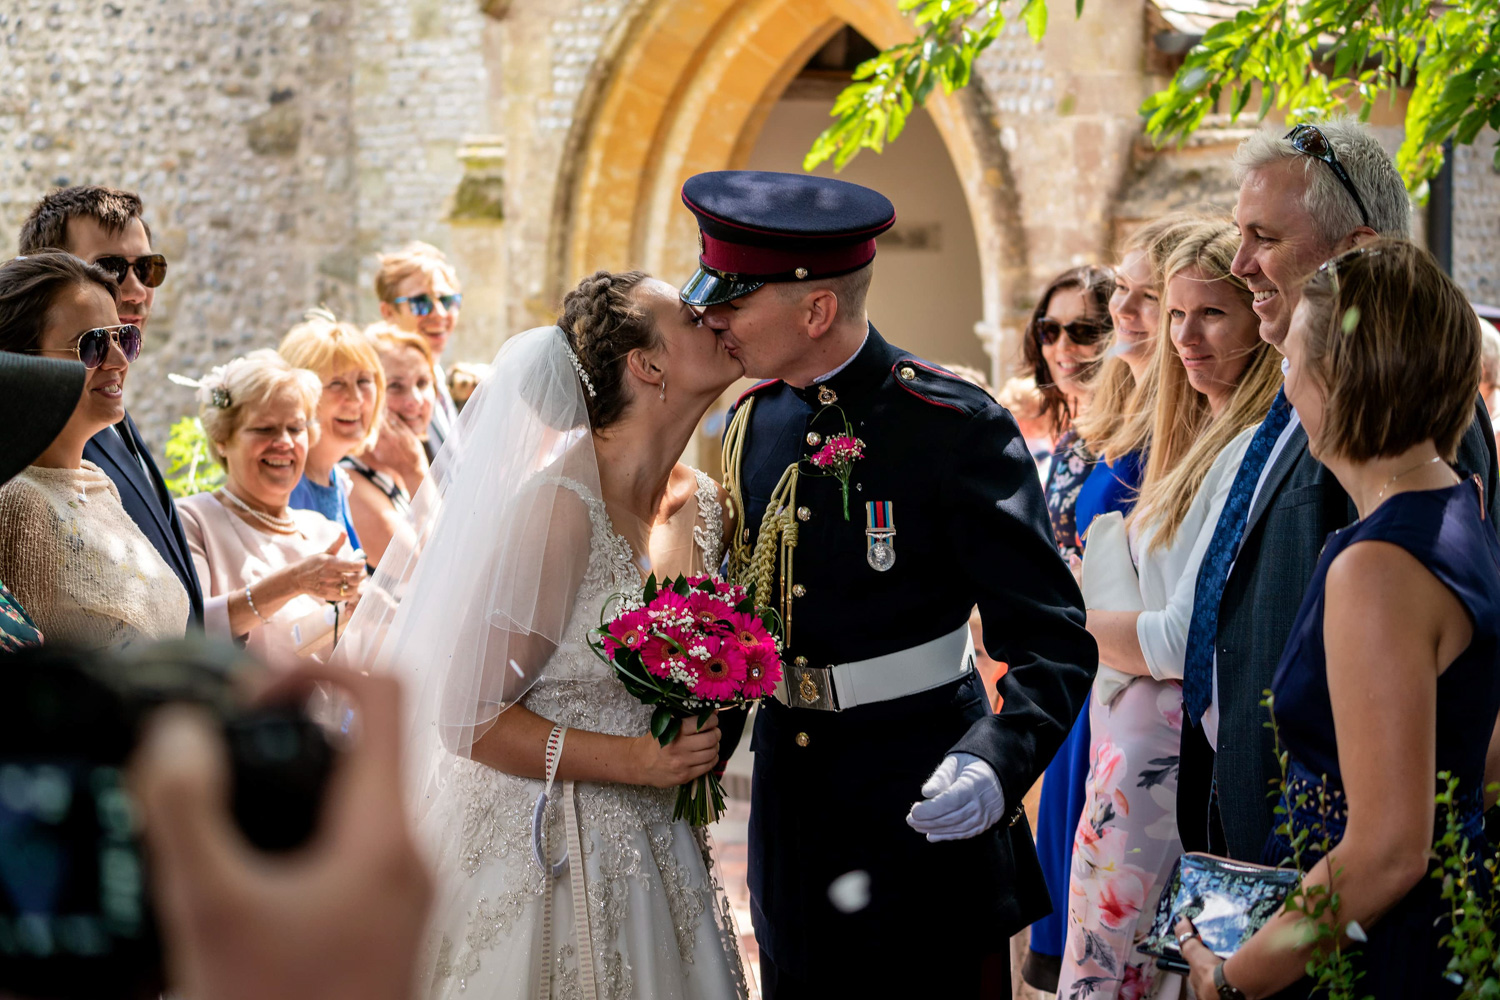 bride-and-groom-kiss-church-.jpg